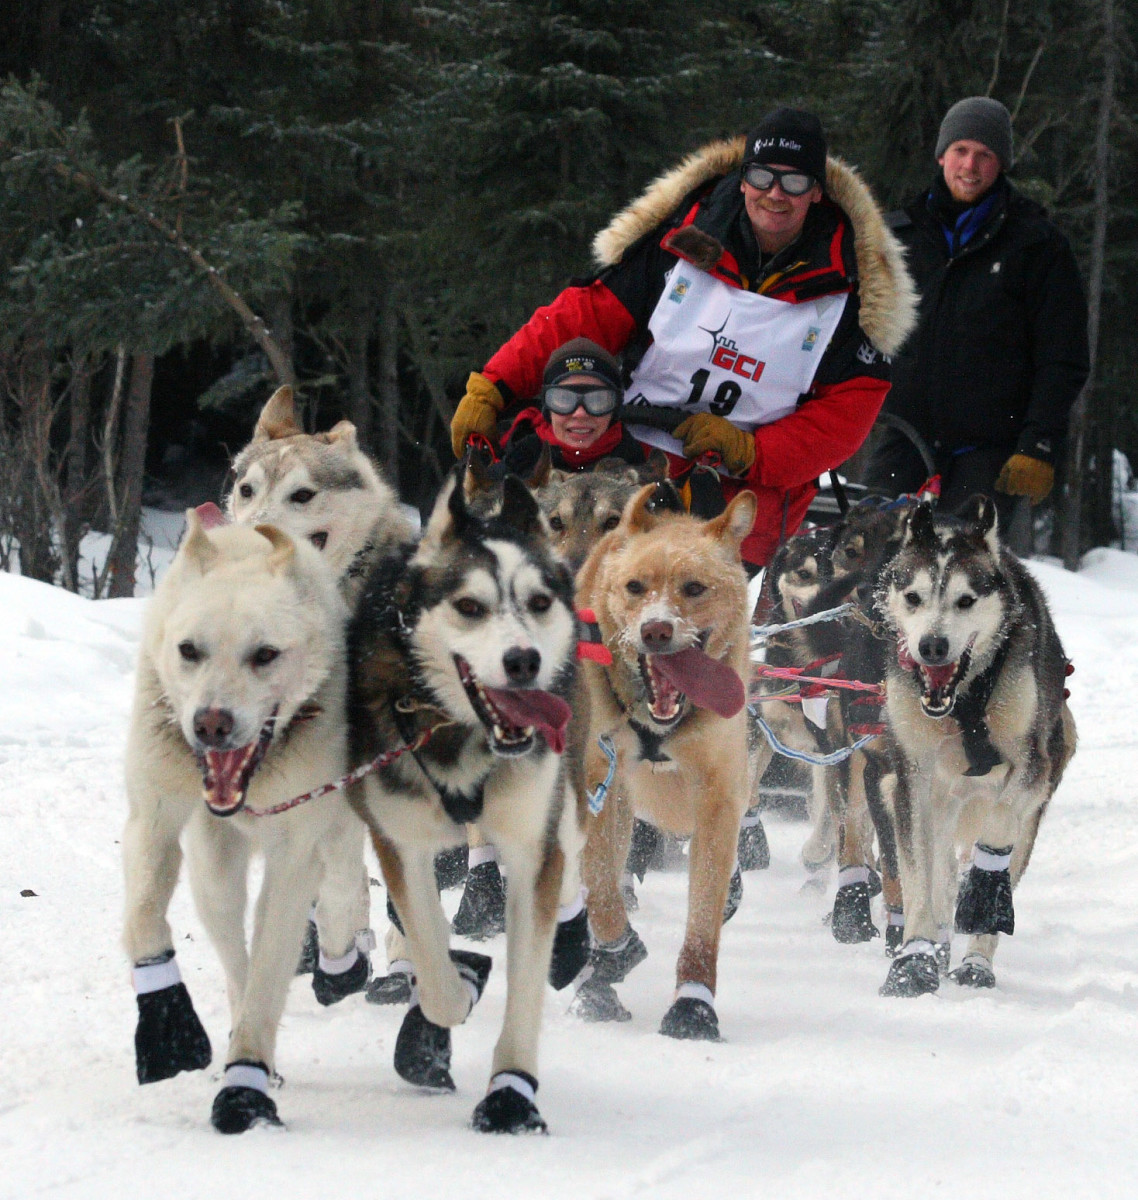 Mitch Seavey and his sled team.